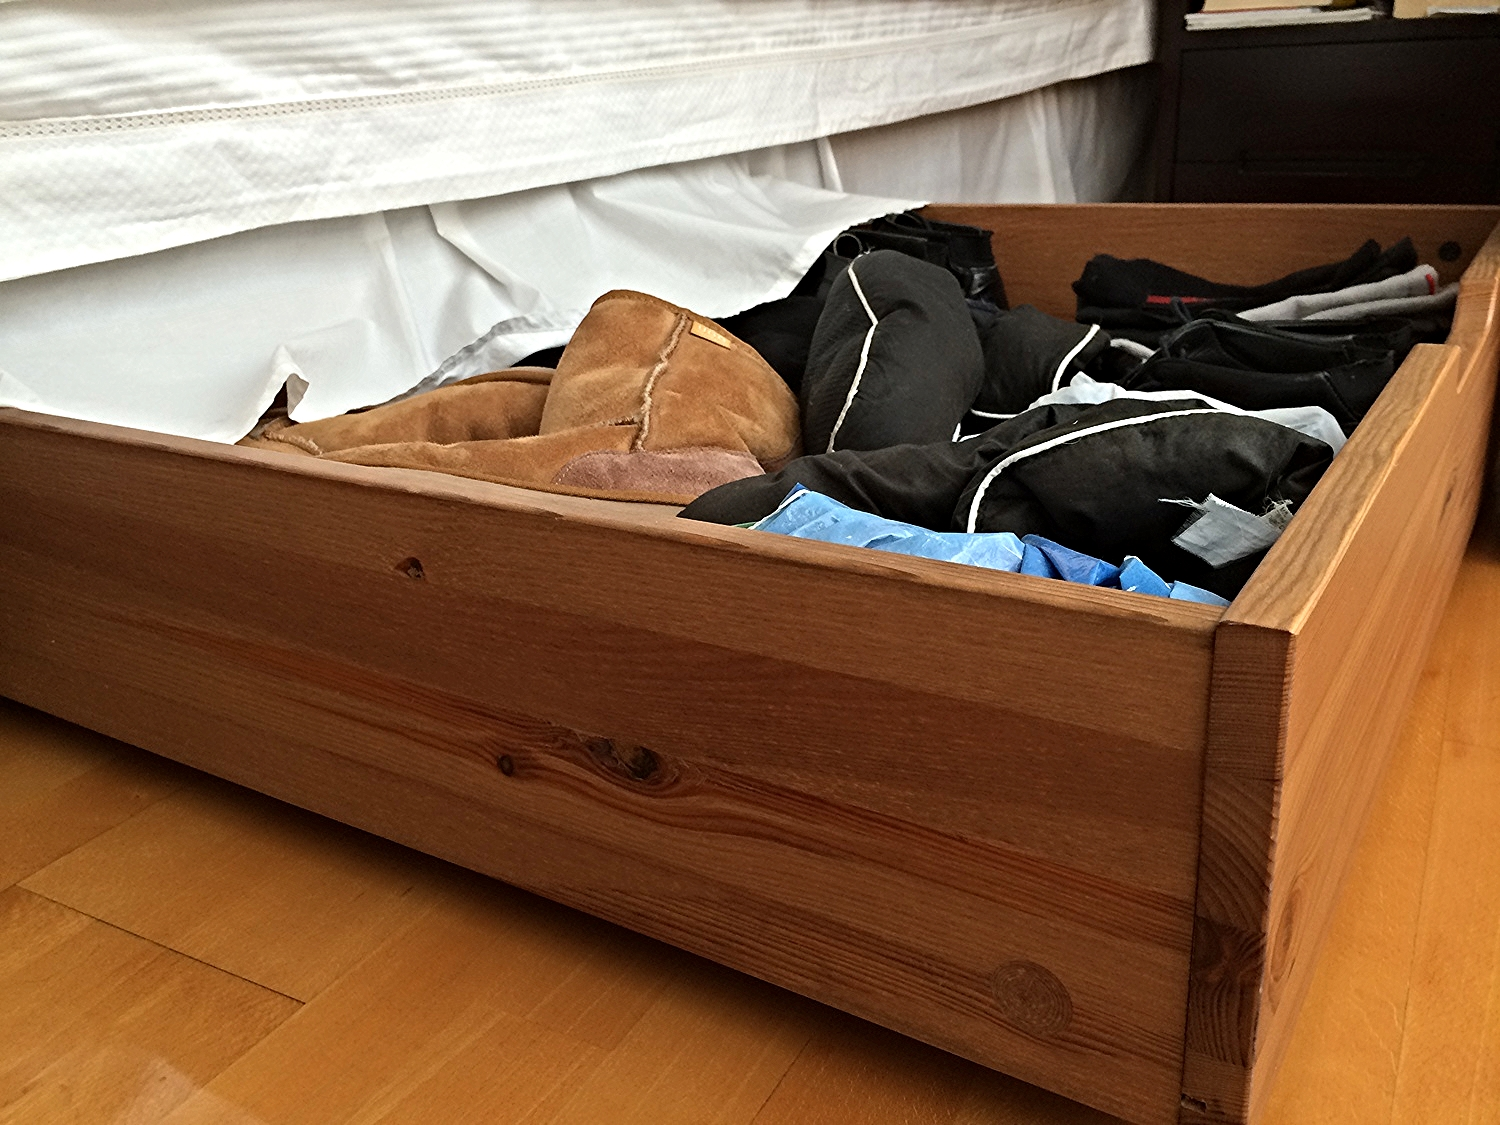 An elegant under bed storage drawer allows the discrete storage of our footwear without sacrificing accessibility.